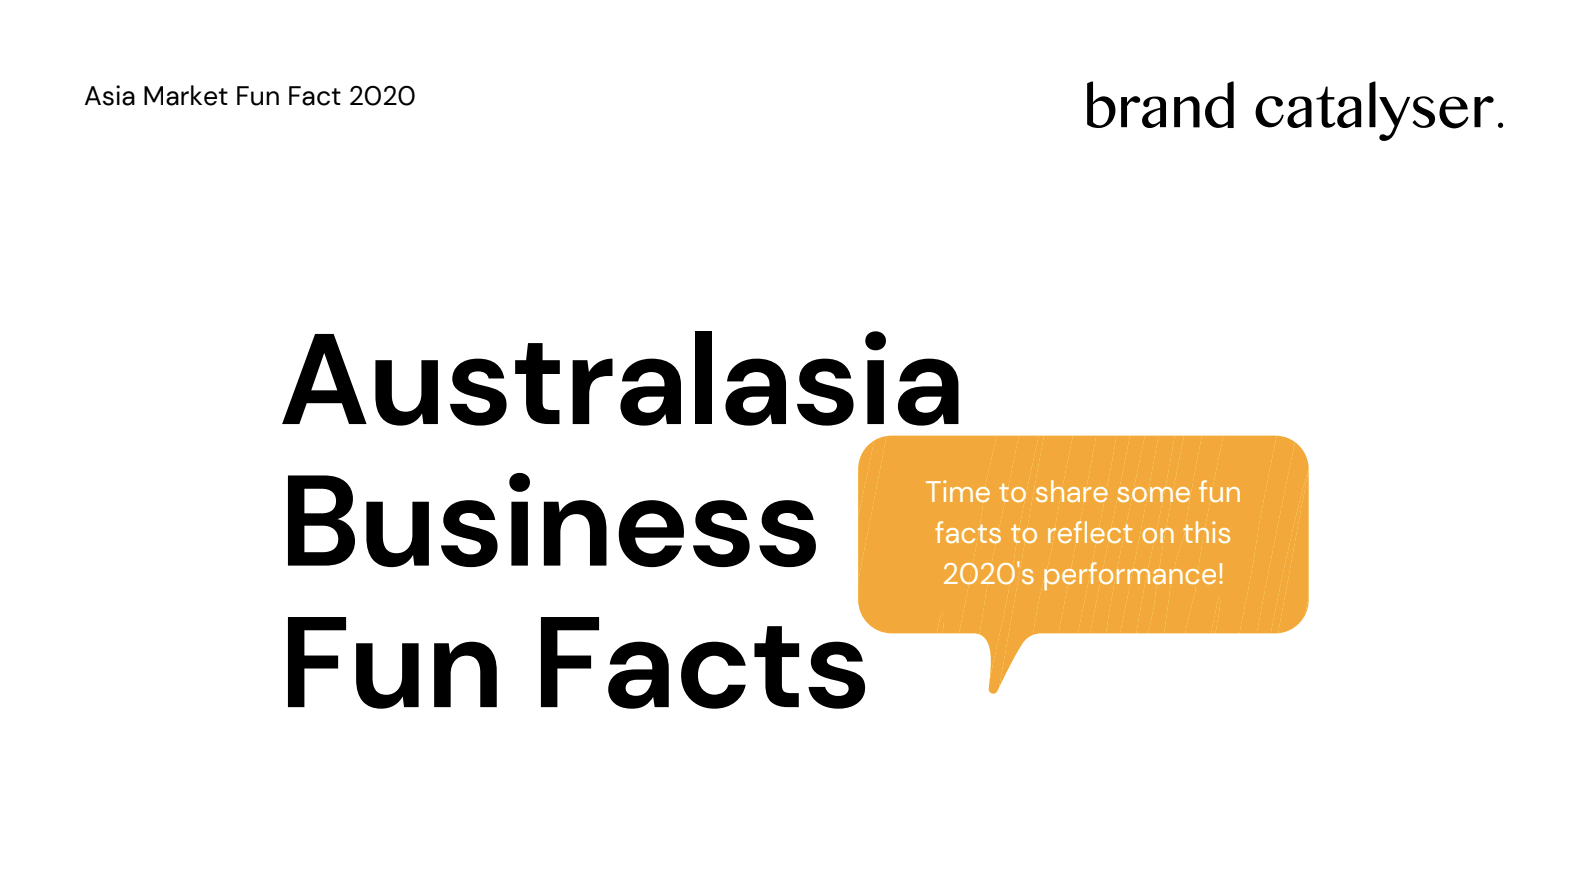 Australasia Business Fun Facts